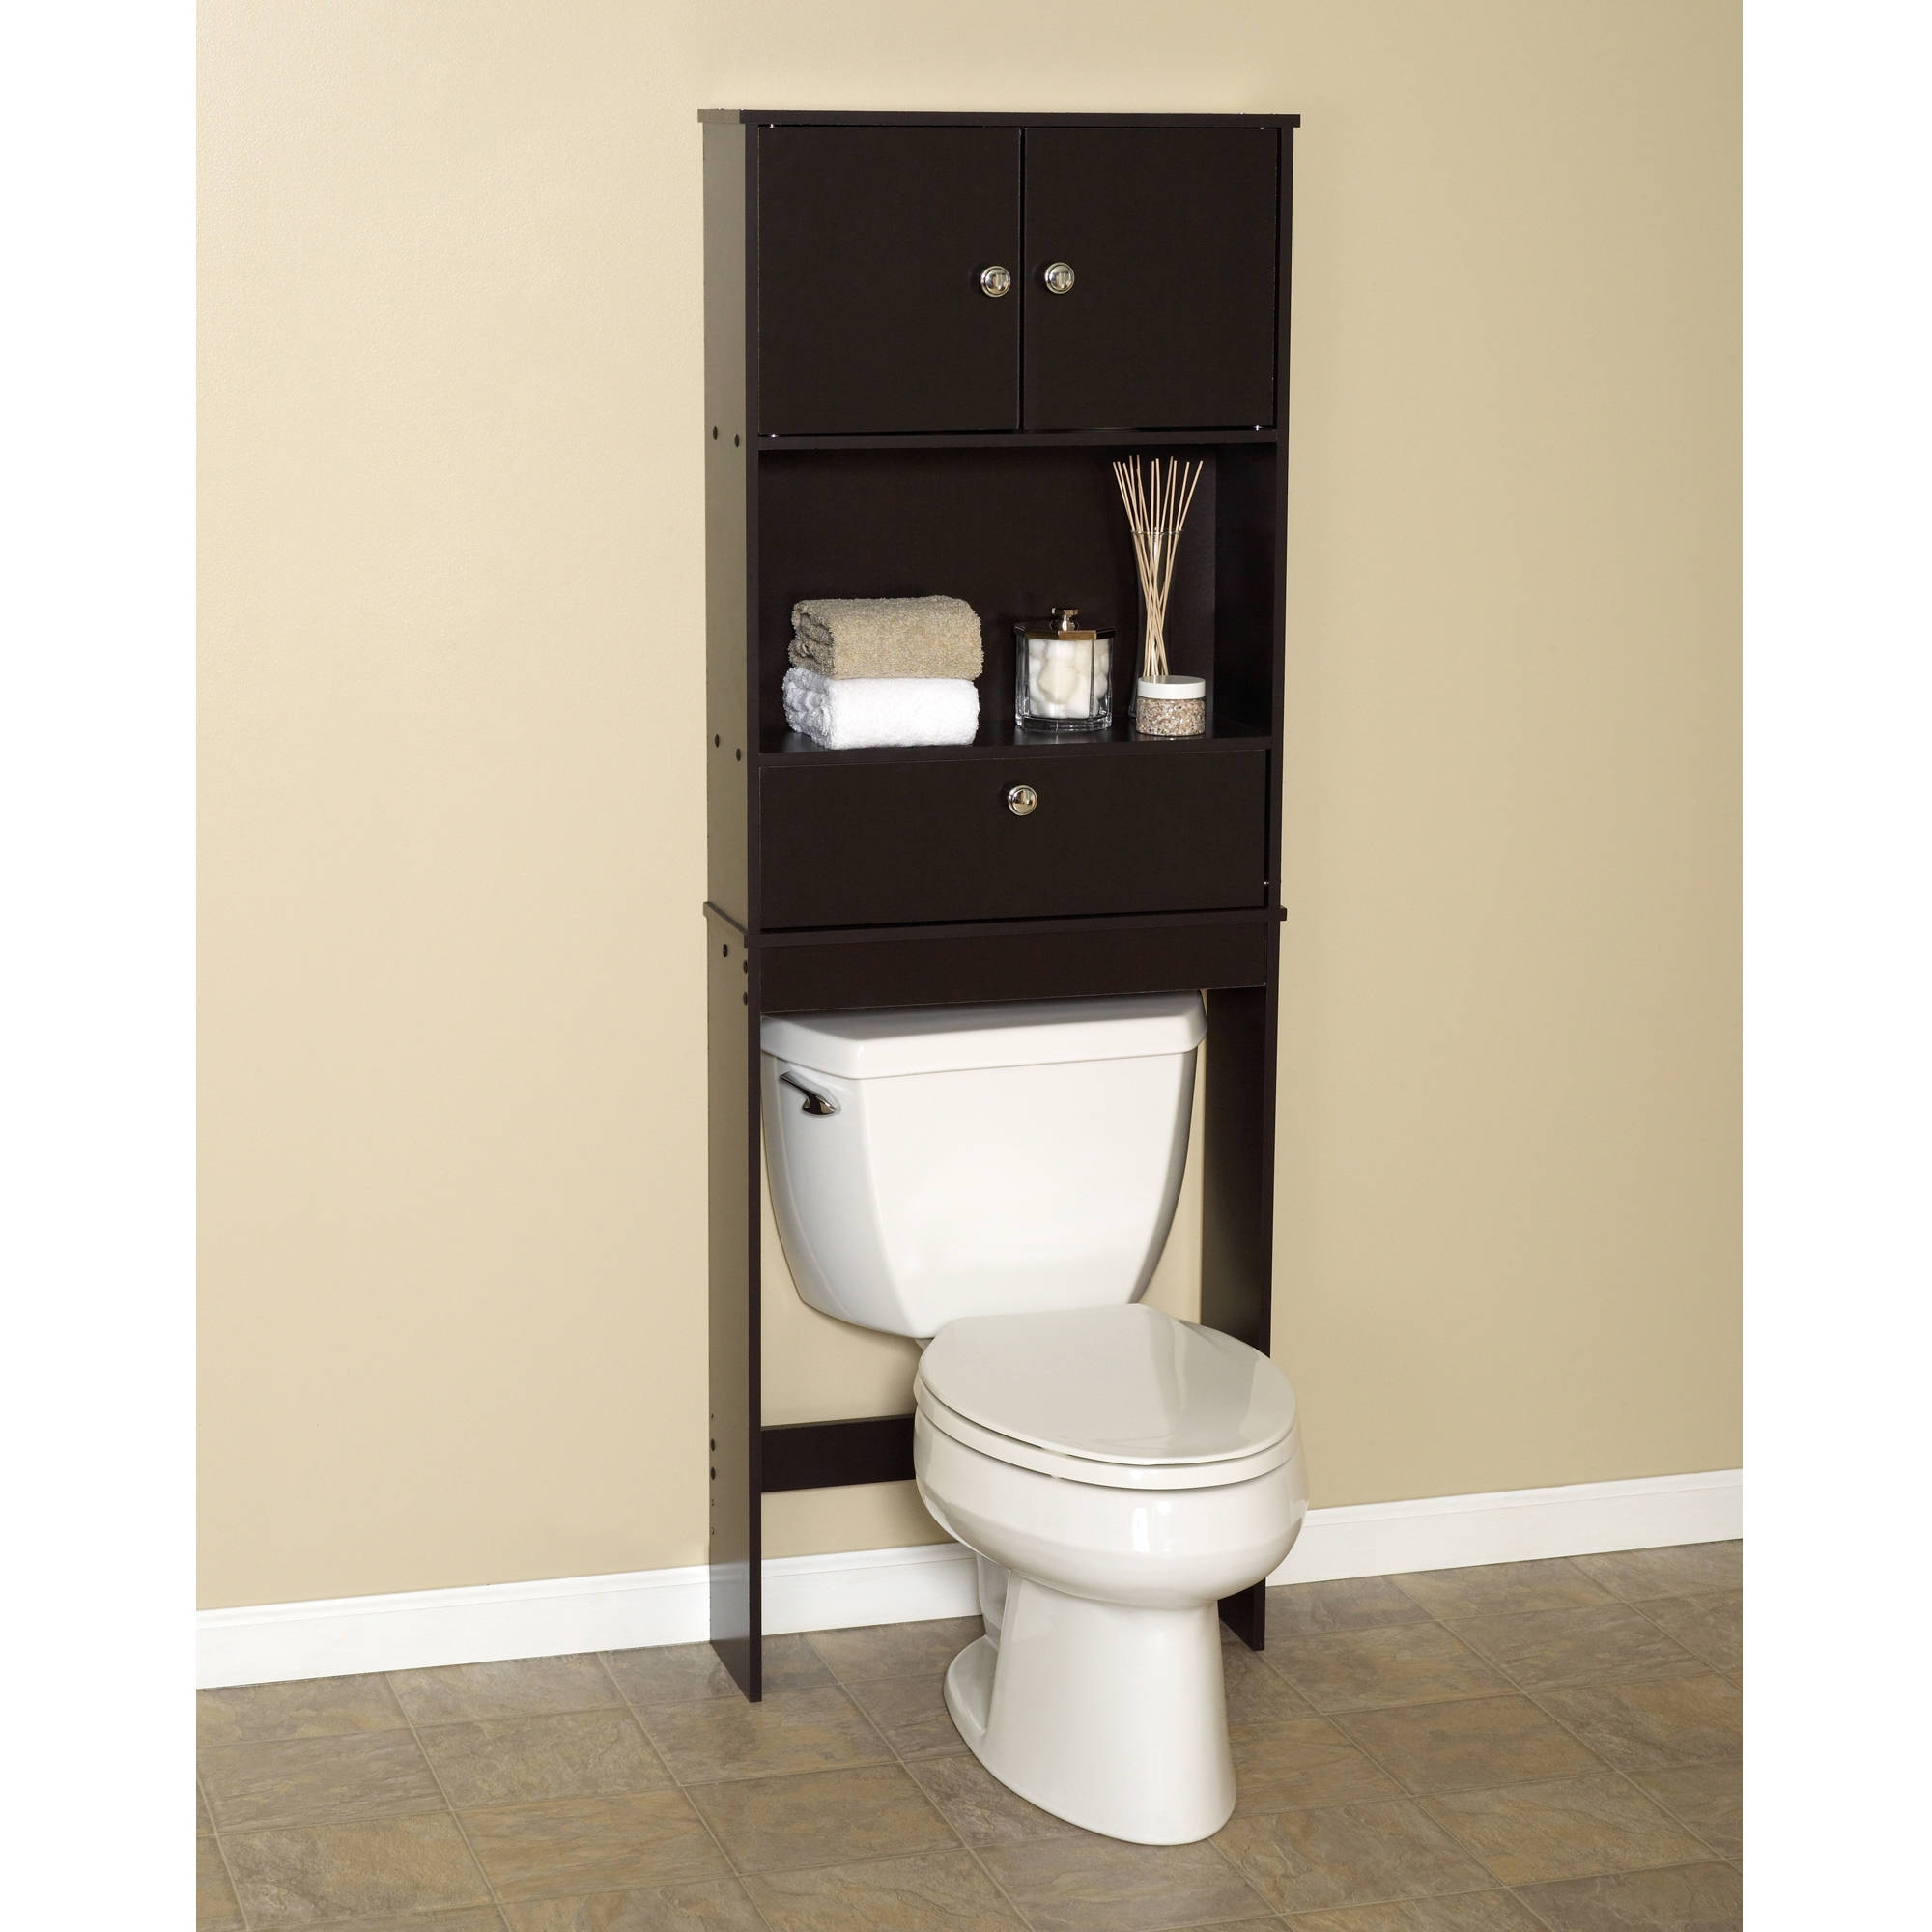 Permalink to Bathroom Space Saver Wall Cabinet